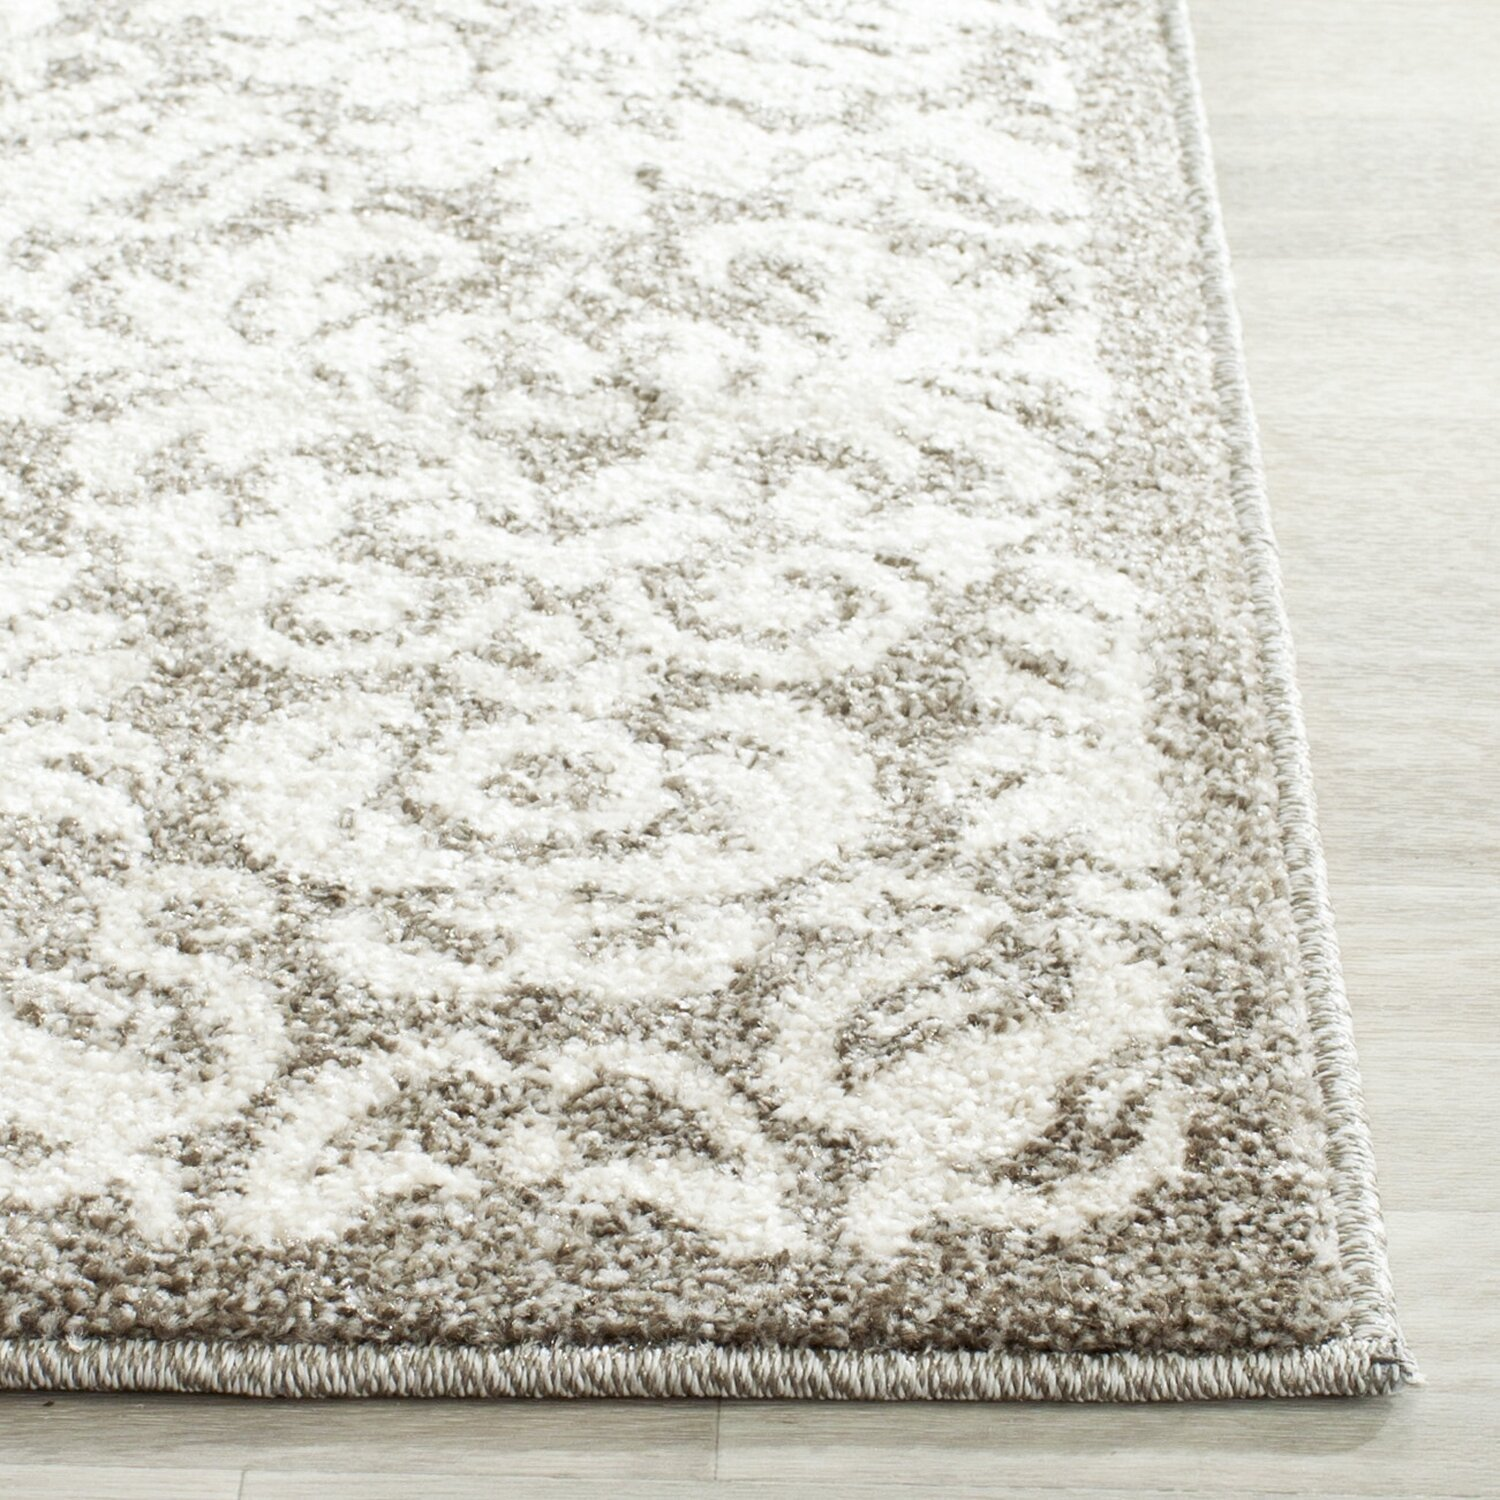 Safavieh amherst dark grey beige area rug reviews wayfair for Grey and tan rug